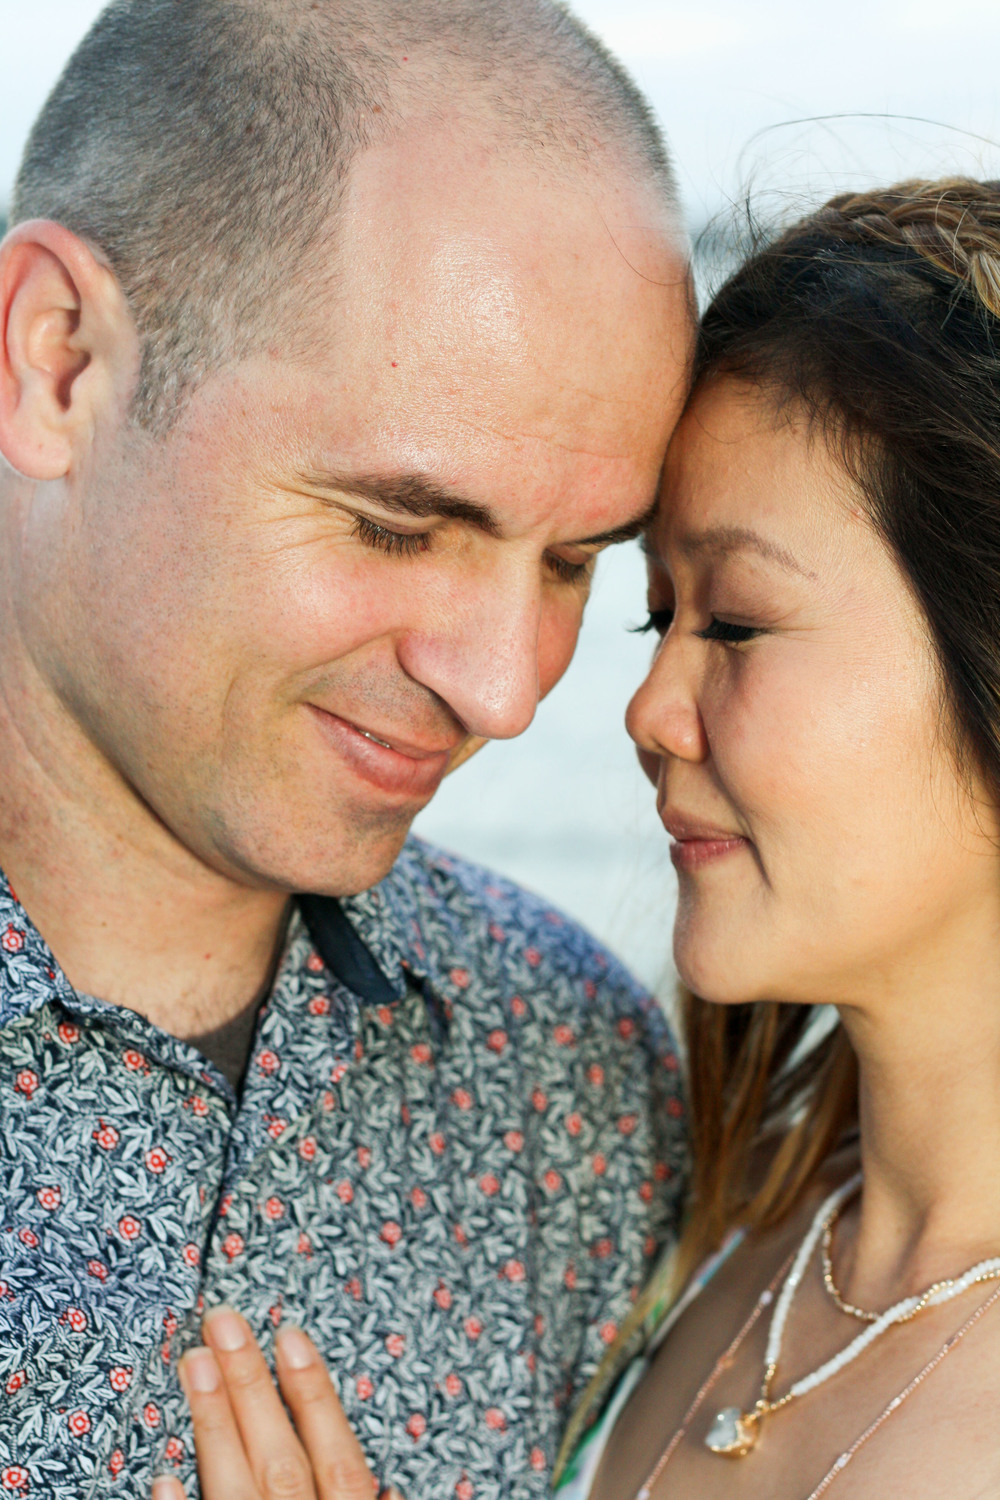 Airlie_Gardens_Engagement_Photography_Brian_&_Amy_83.jpg